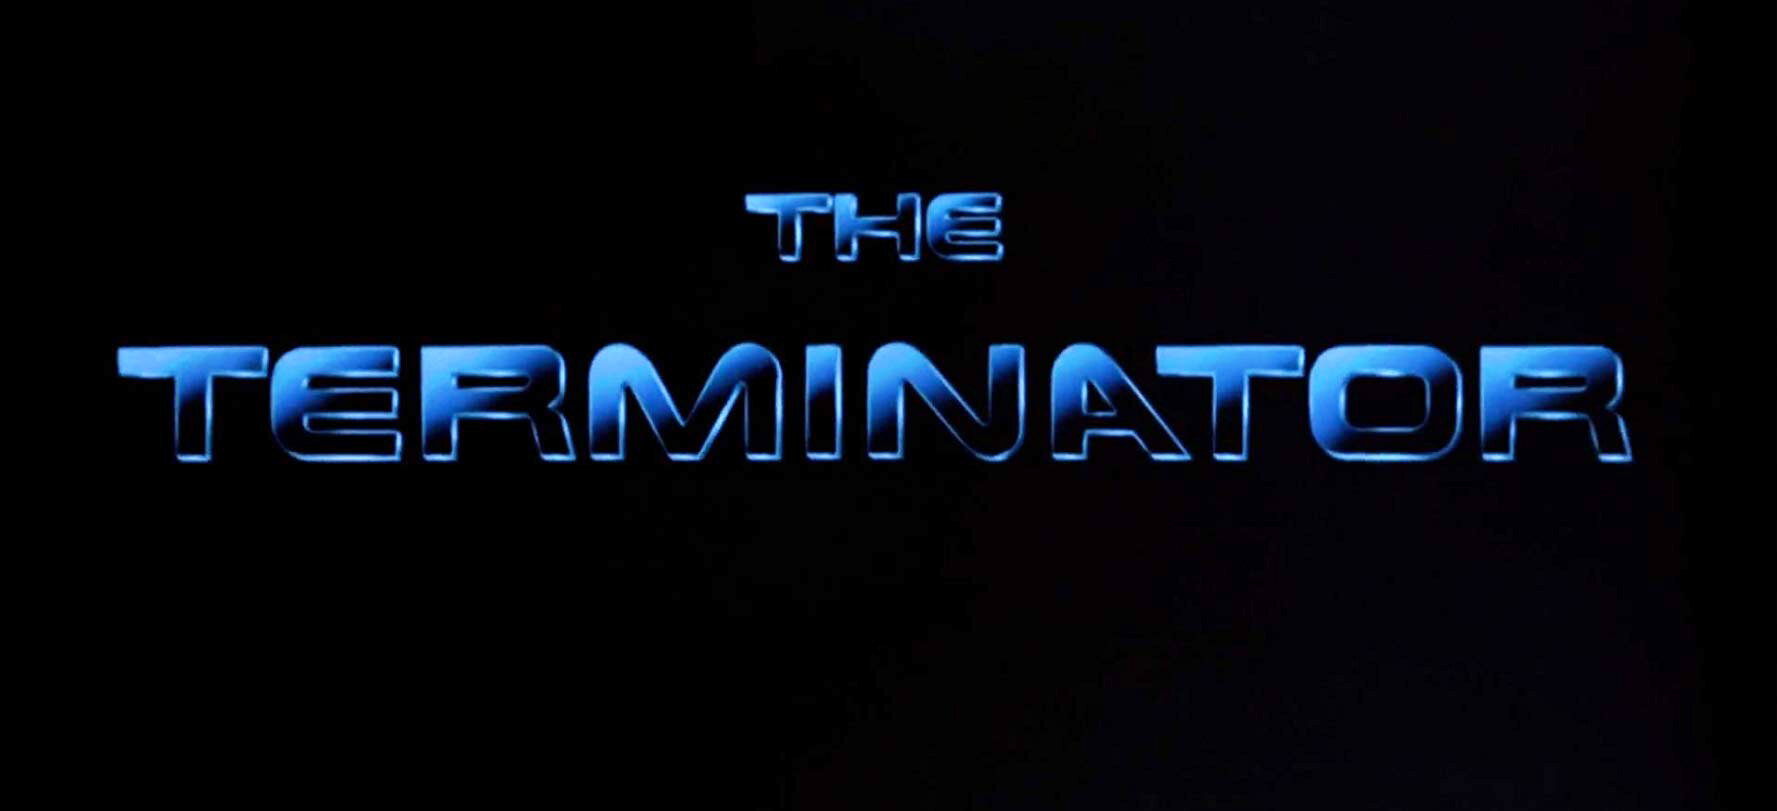 Final main title zooming back to infinity.